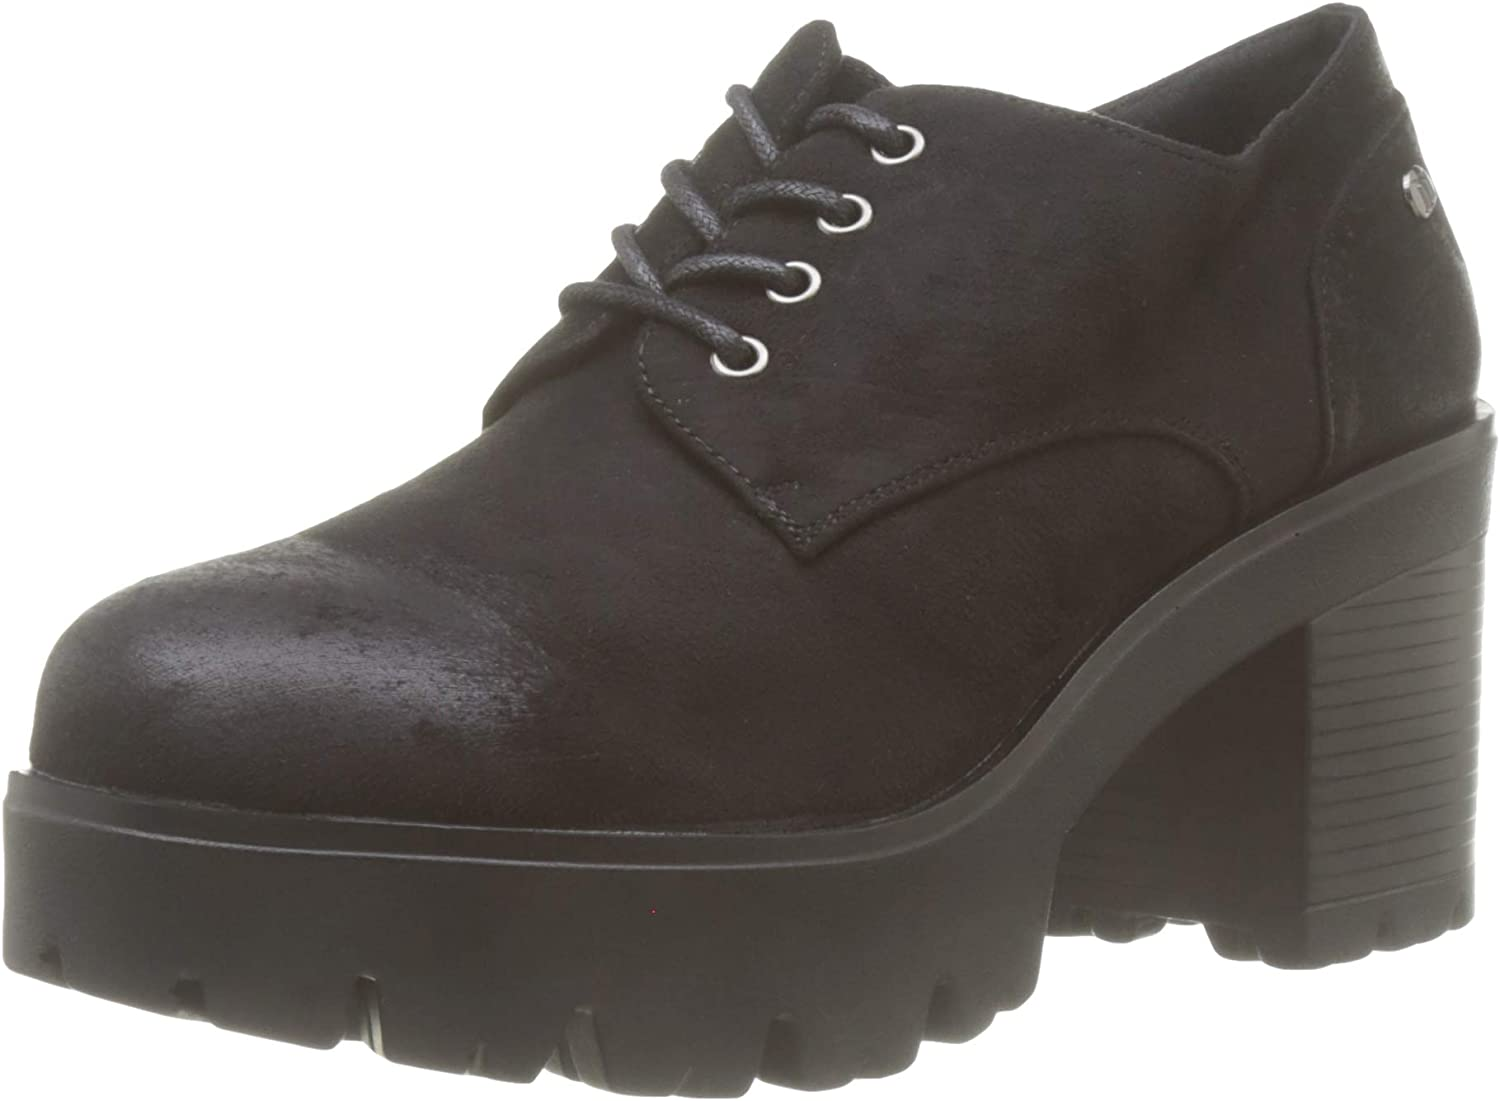 MTNG Women's Clearance SALE Limited time Phoenix Mall Oxford Lace-up